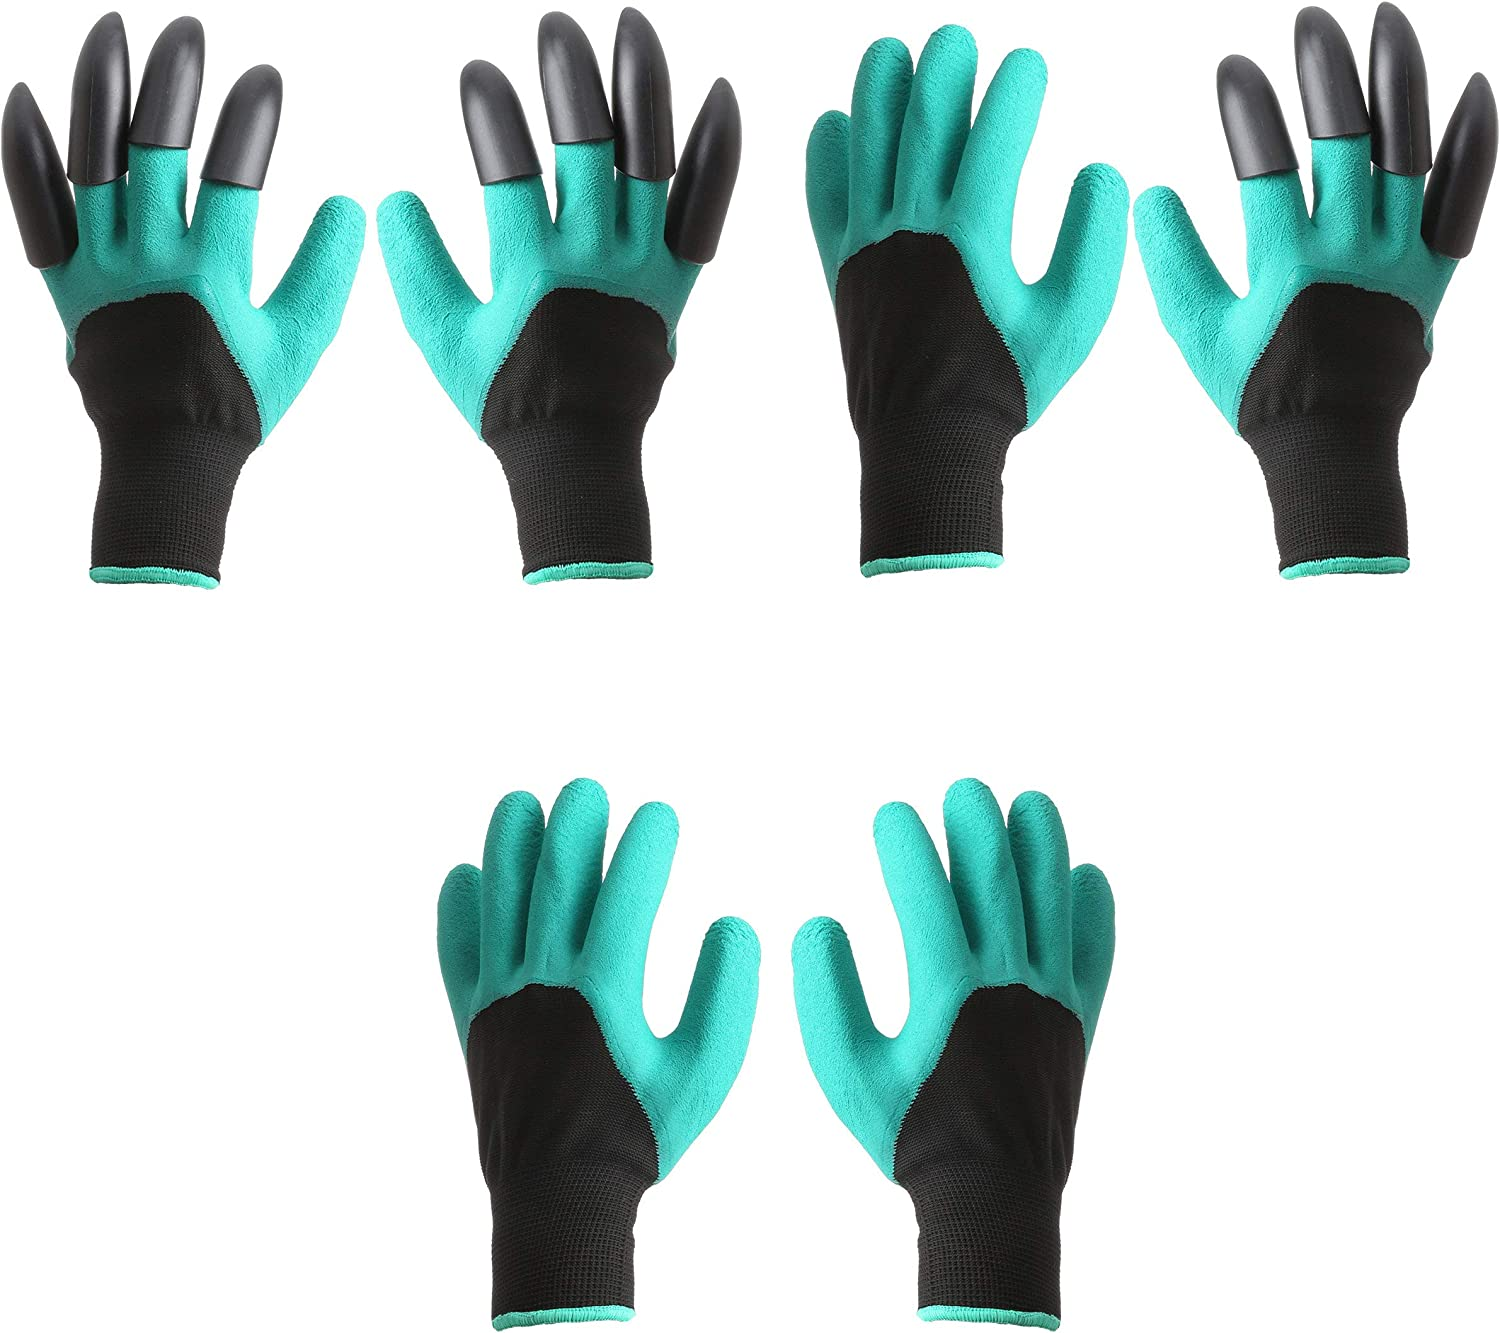 3Pairs Garden Genie Puncture Resistant Waterproof Claws Gardening Gloves for Quick and Easy Digging Planting Normal single Claws